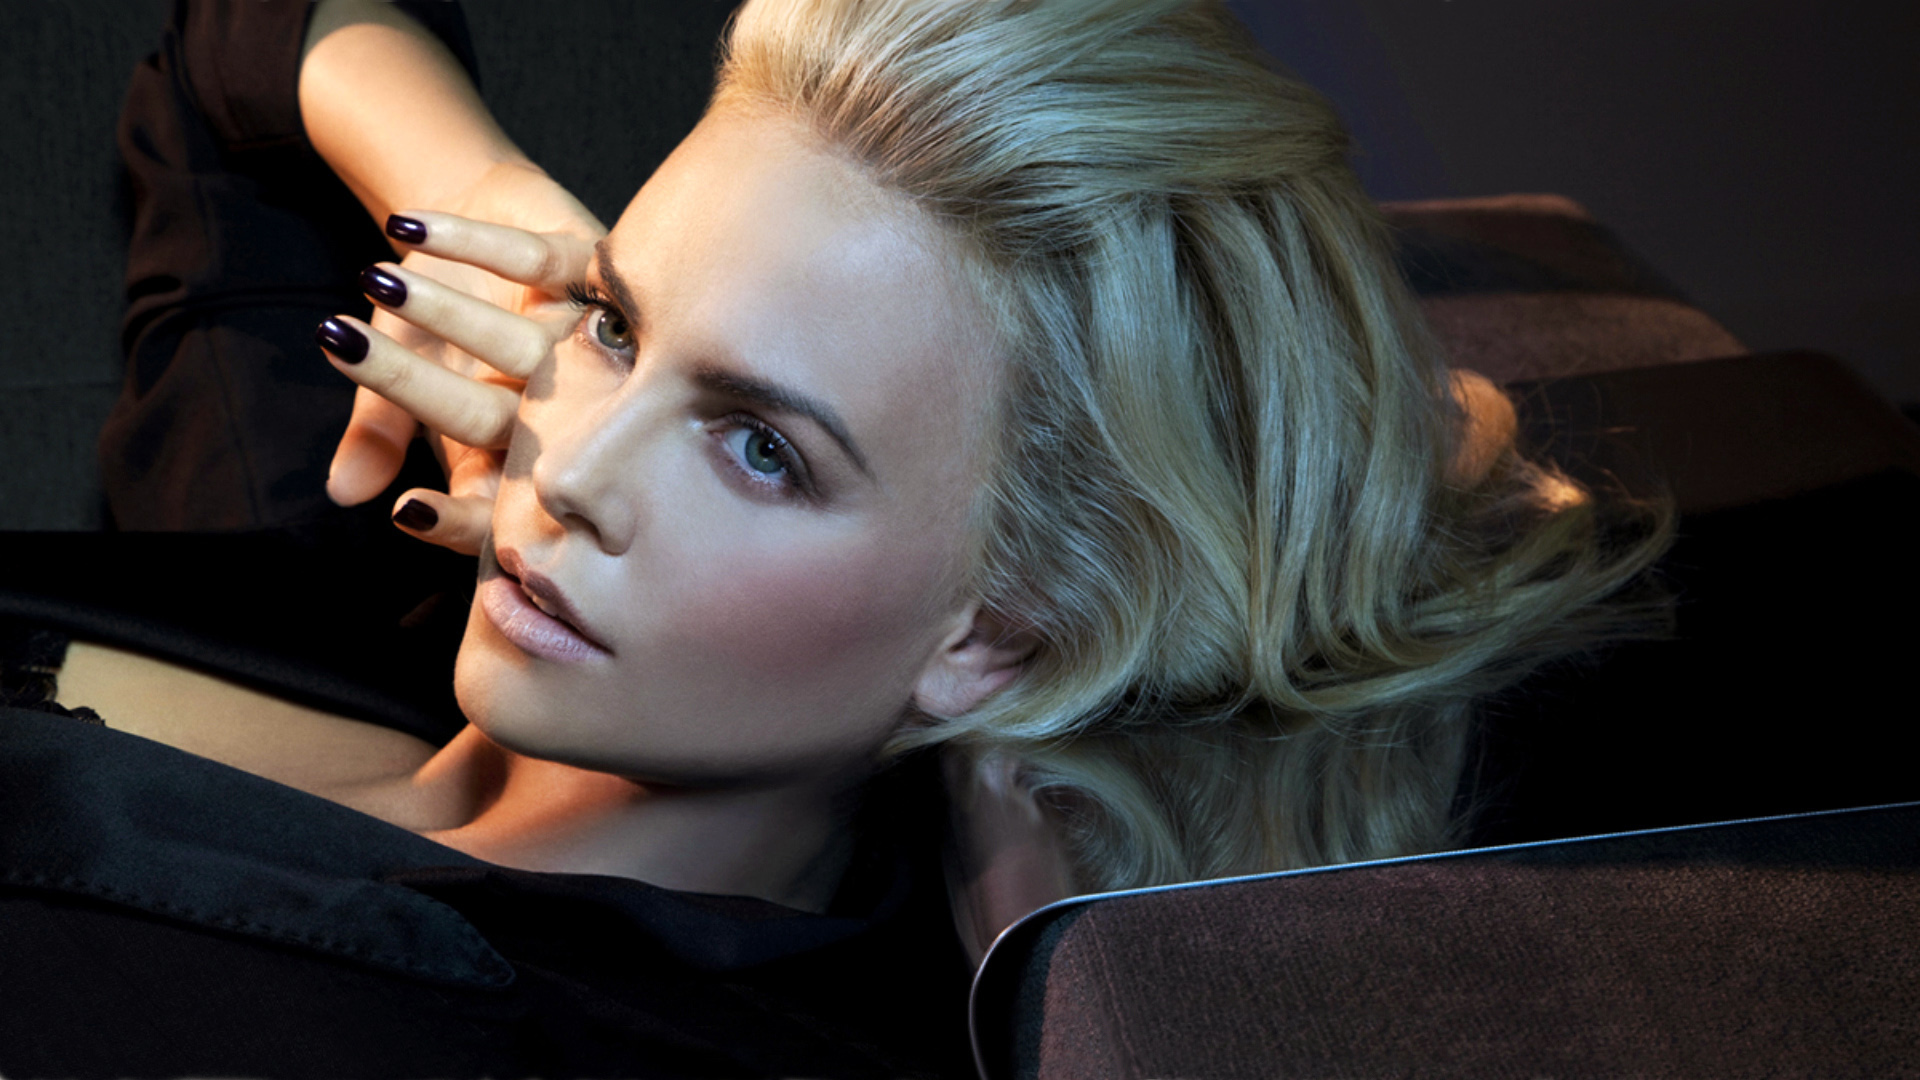 Charlize Theron Hd Wallpaper Background Image 1920x1080 Id